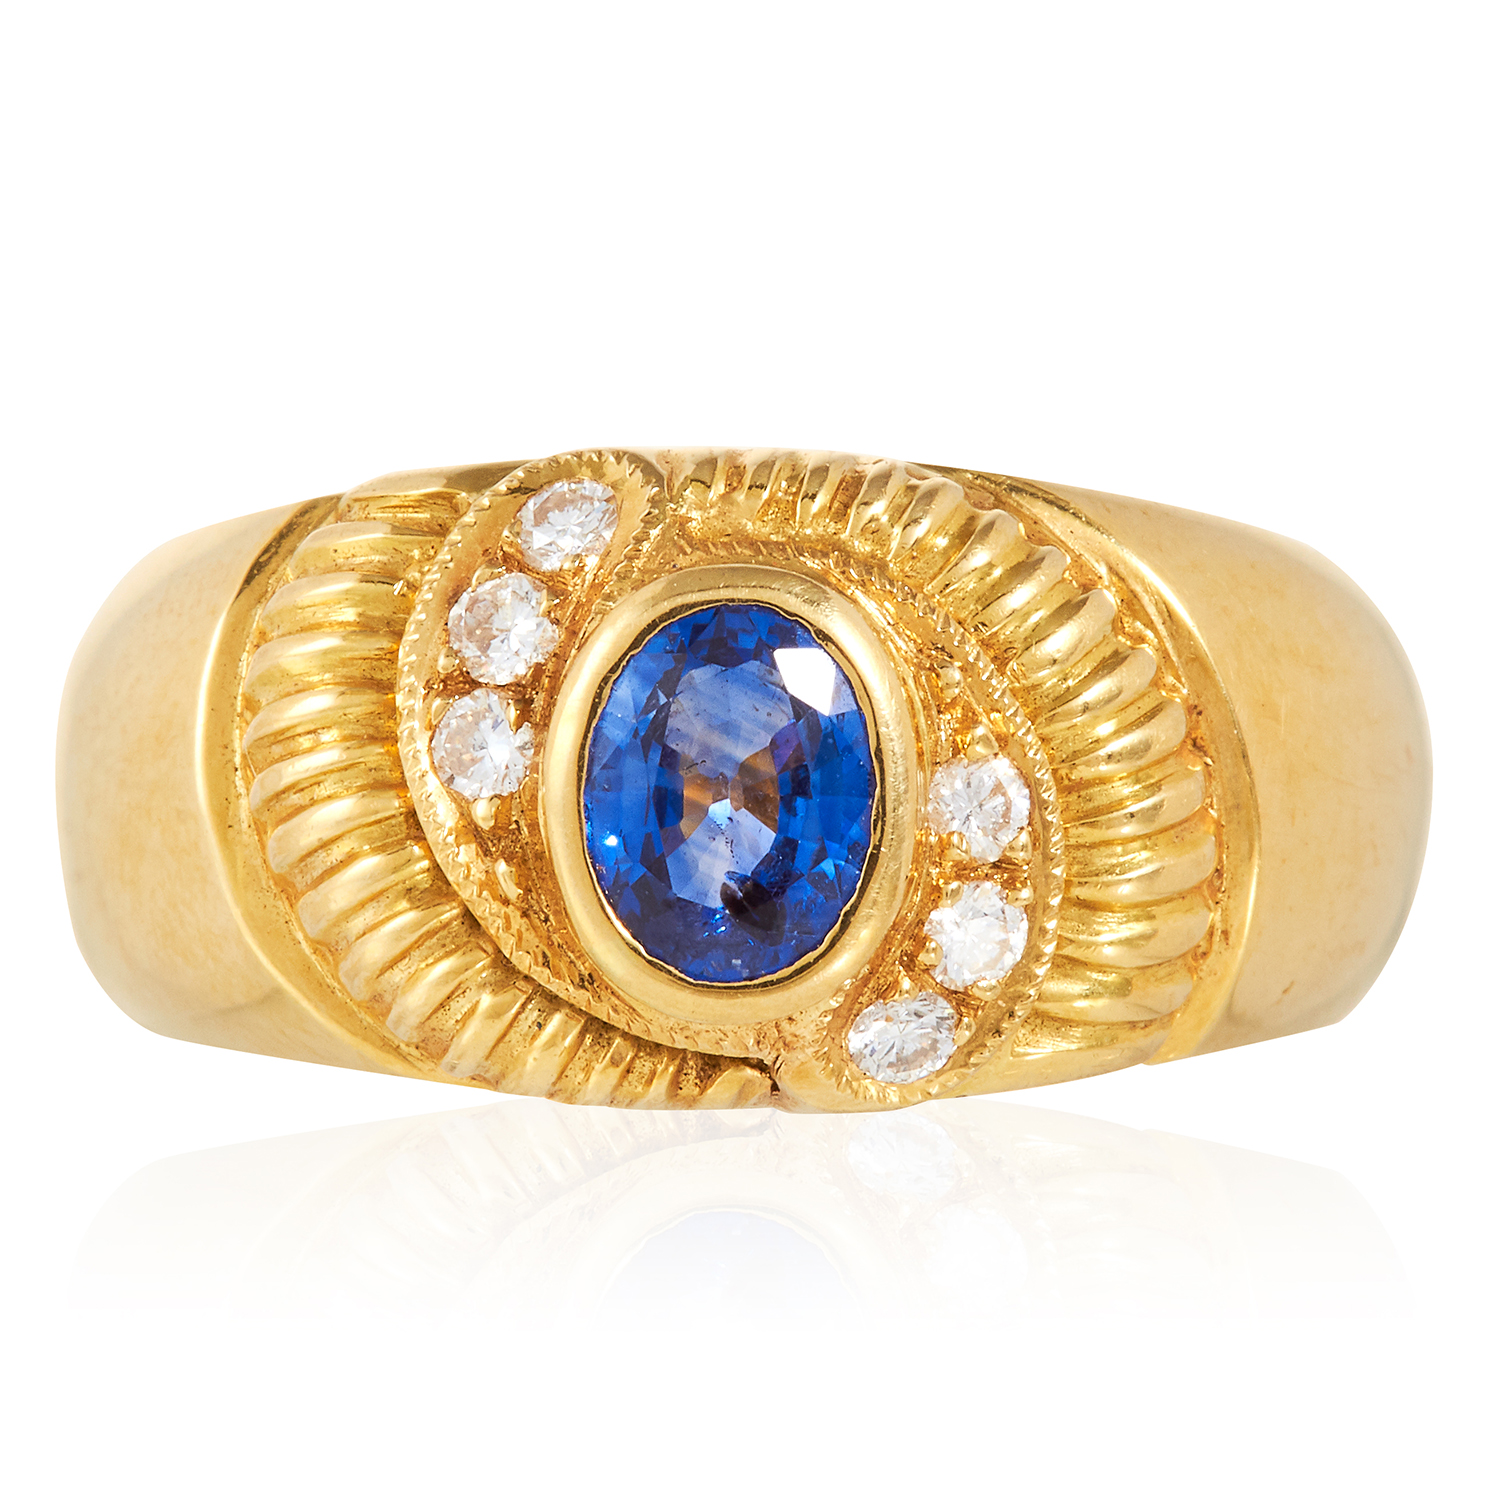 A SAPPHIRE AND DIAMOND DRESS RING in 18ct yellow gold, set with an oval cut Ceylon sapphire and